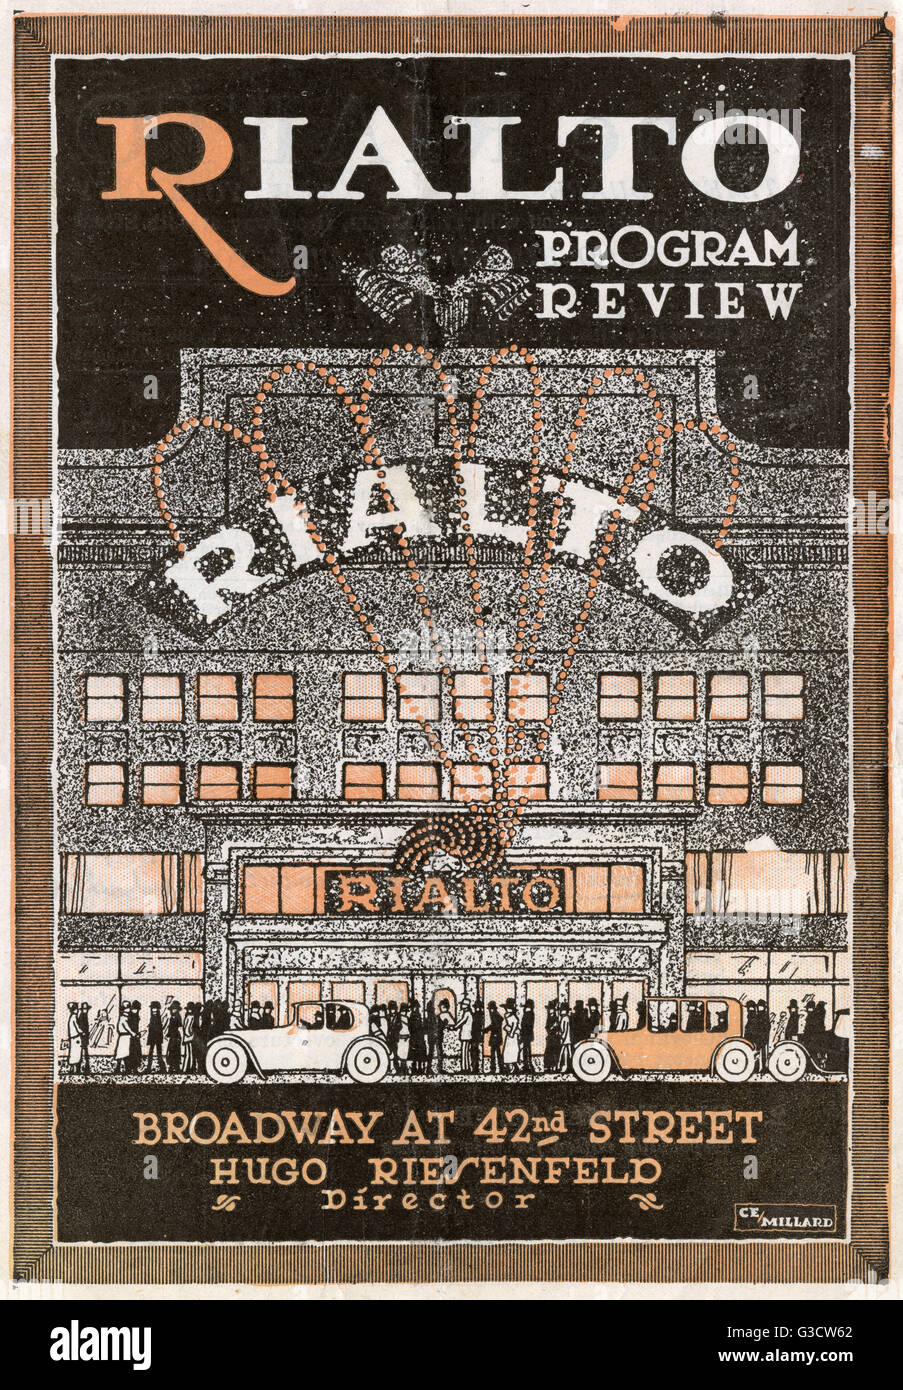 Programme cover for the Rialto Theatre, Broadway at 42nd Street, New York, USA, Director Hugo Riesenfeld, February - Stock Image